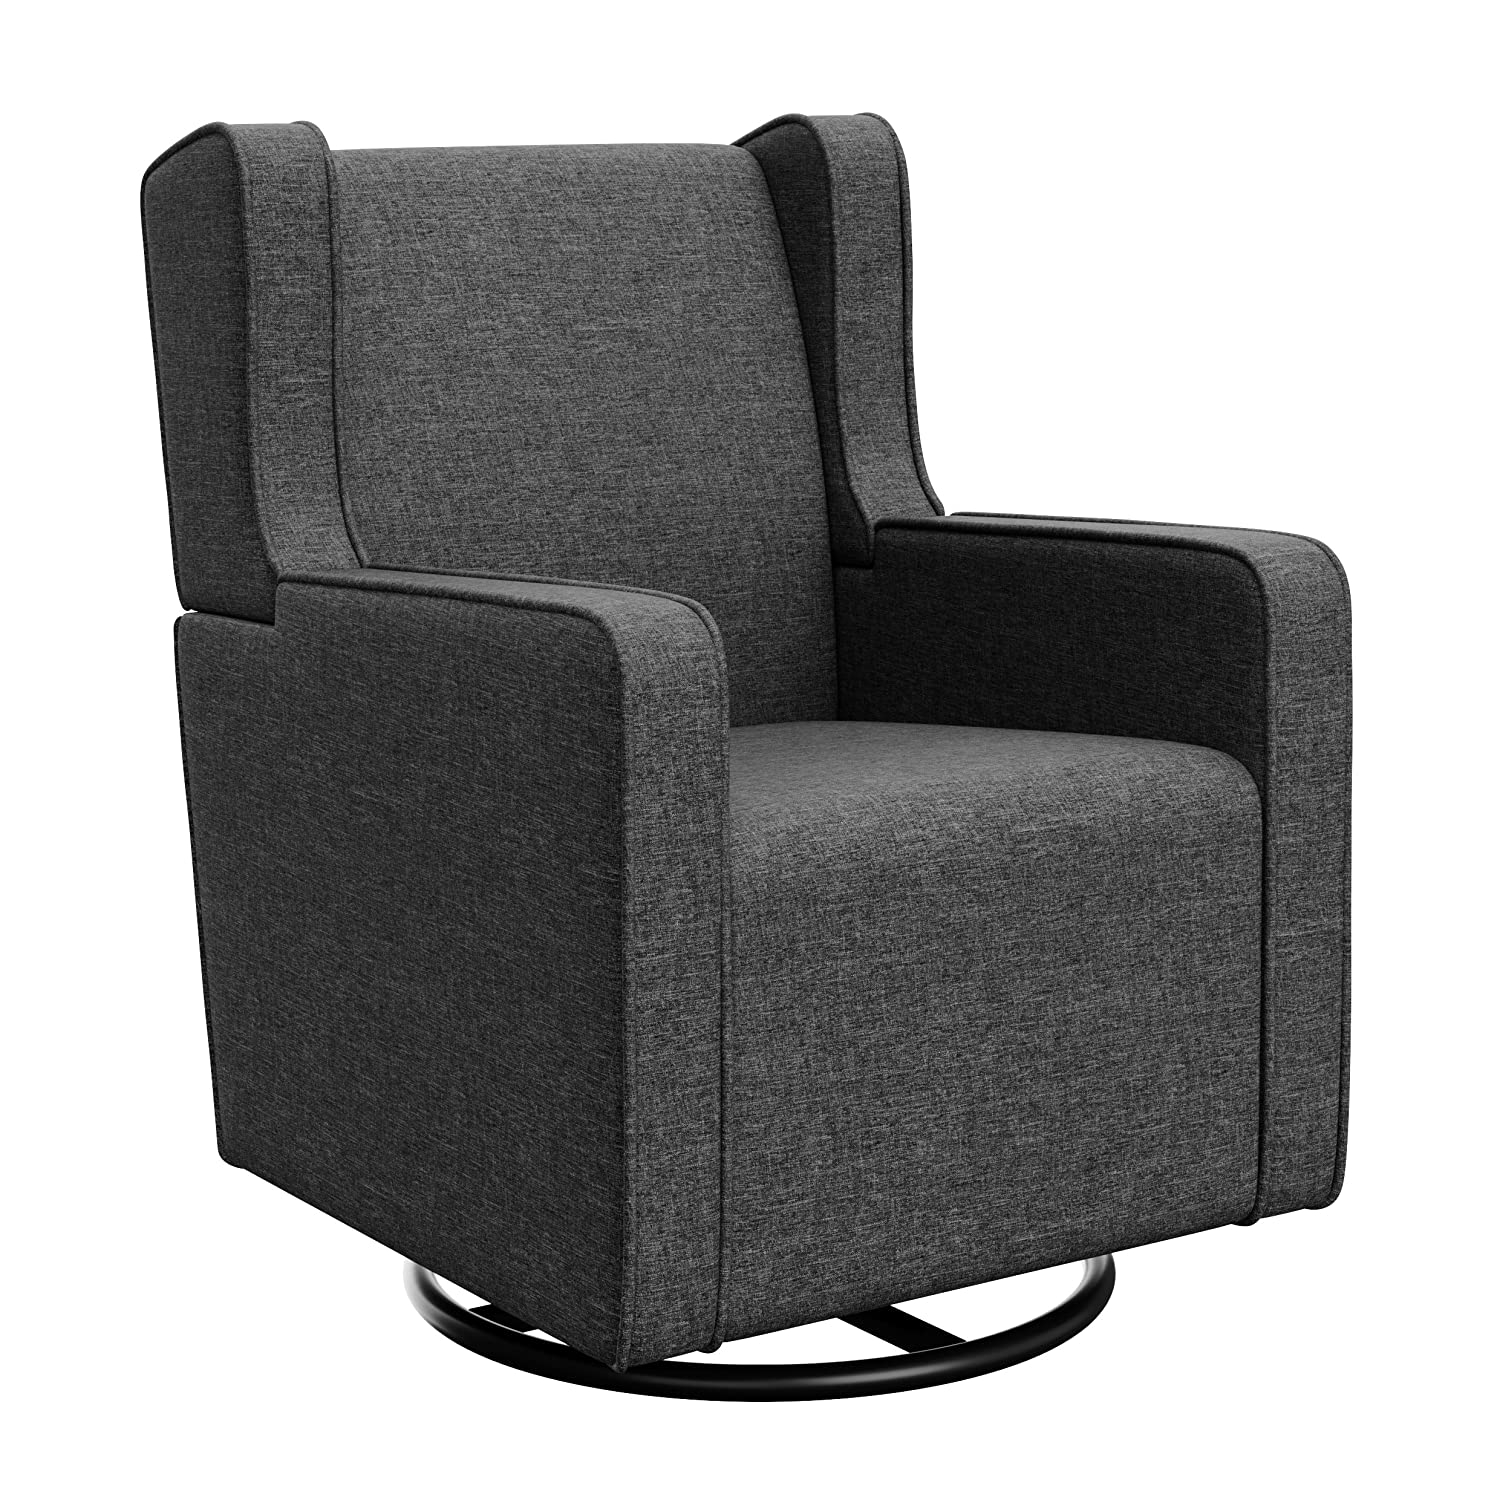 Graco Remi Upholstered Swivel Glider, Night Sky, Cleanable Upholstered Comfort Rocking Nursery Swivel Chair